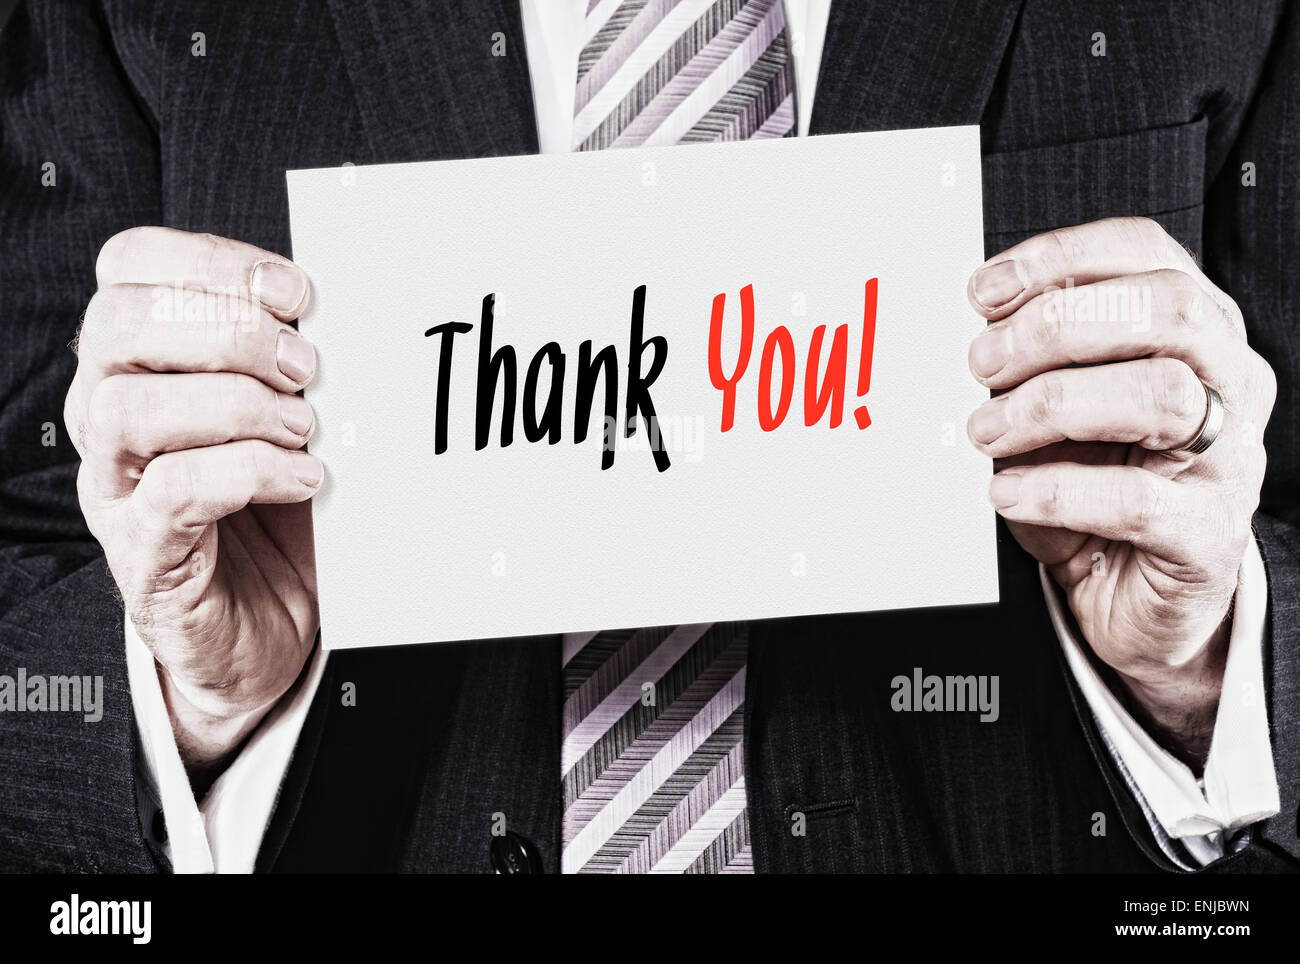 A businessman holding a business card with the words, Thank You, written on it. - Stock Image